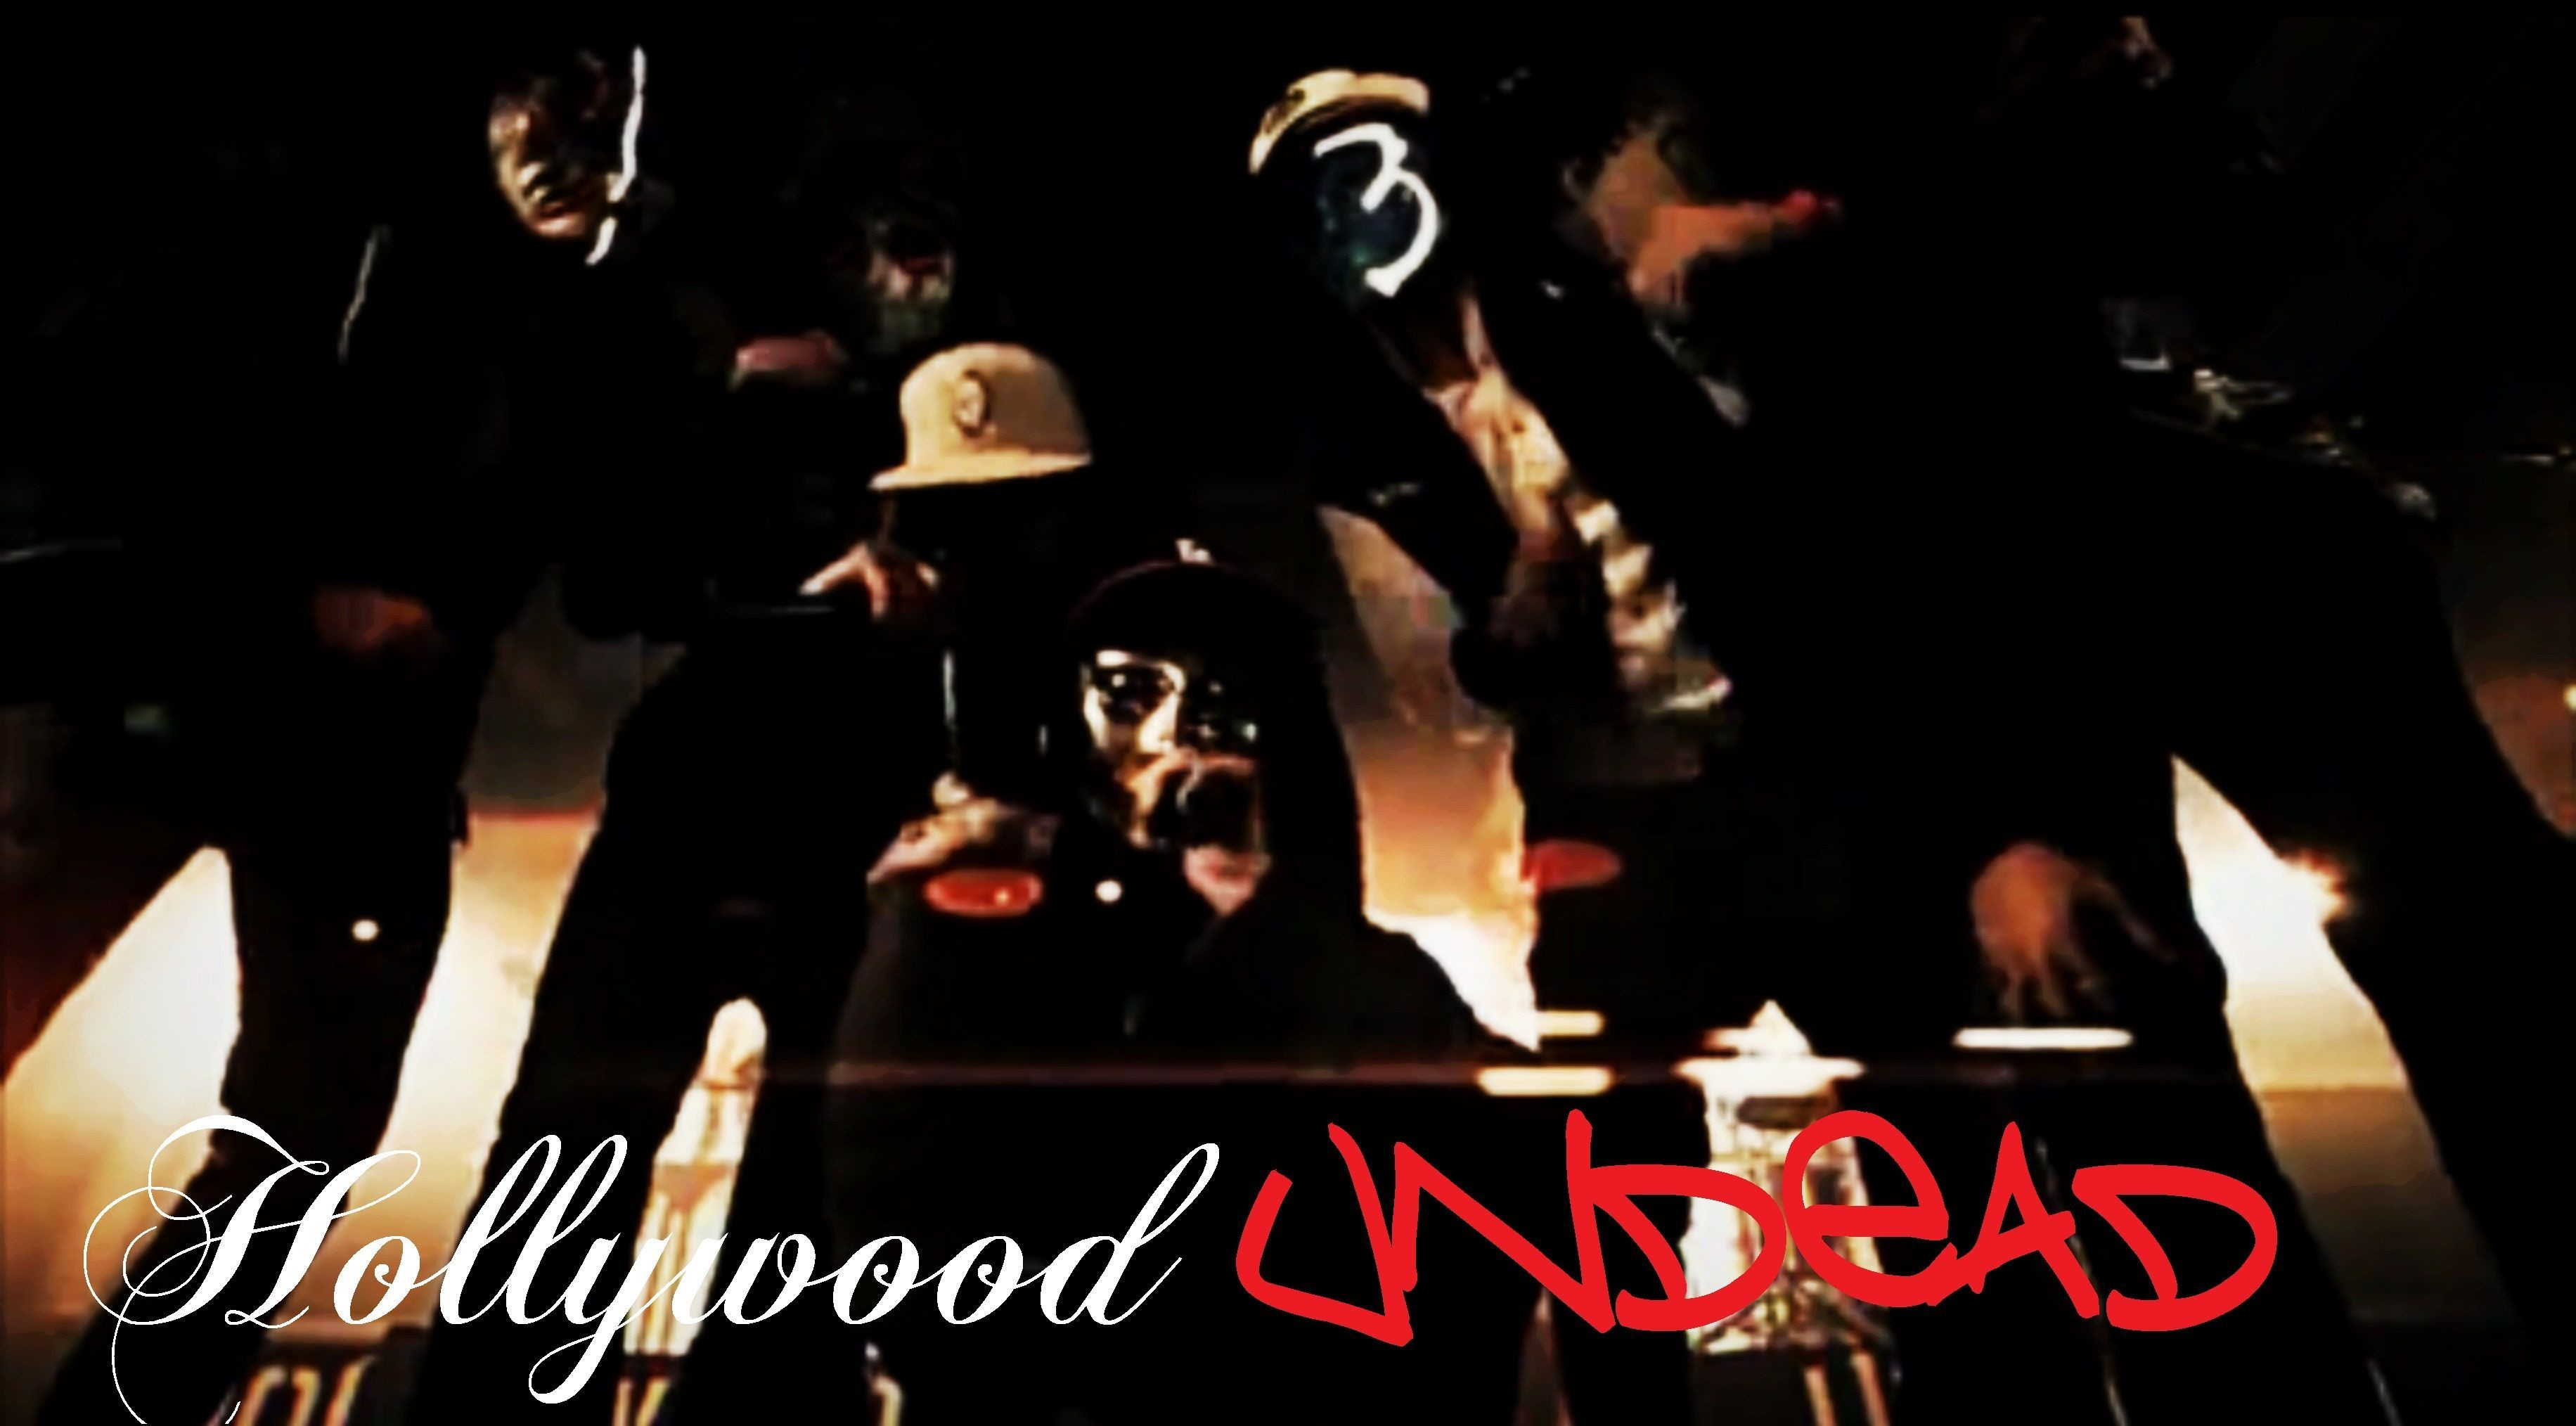 1920x1200 Hollywood Undead Wallpapers Photos Pack V59OB